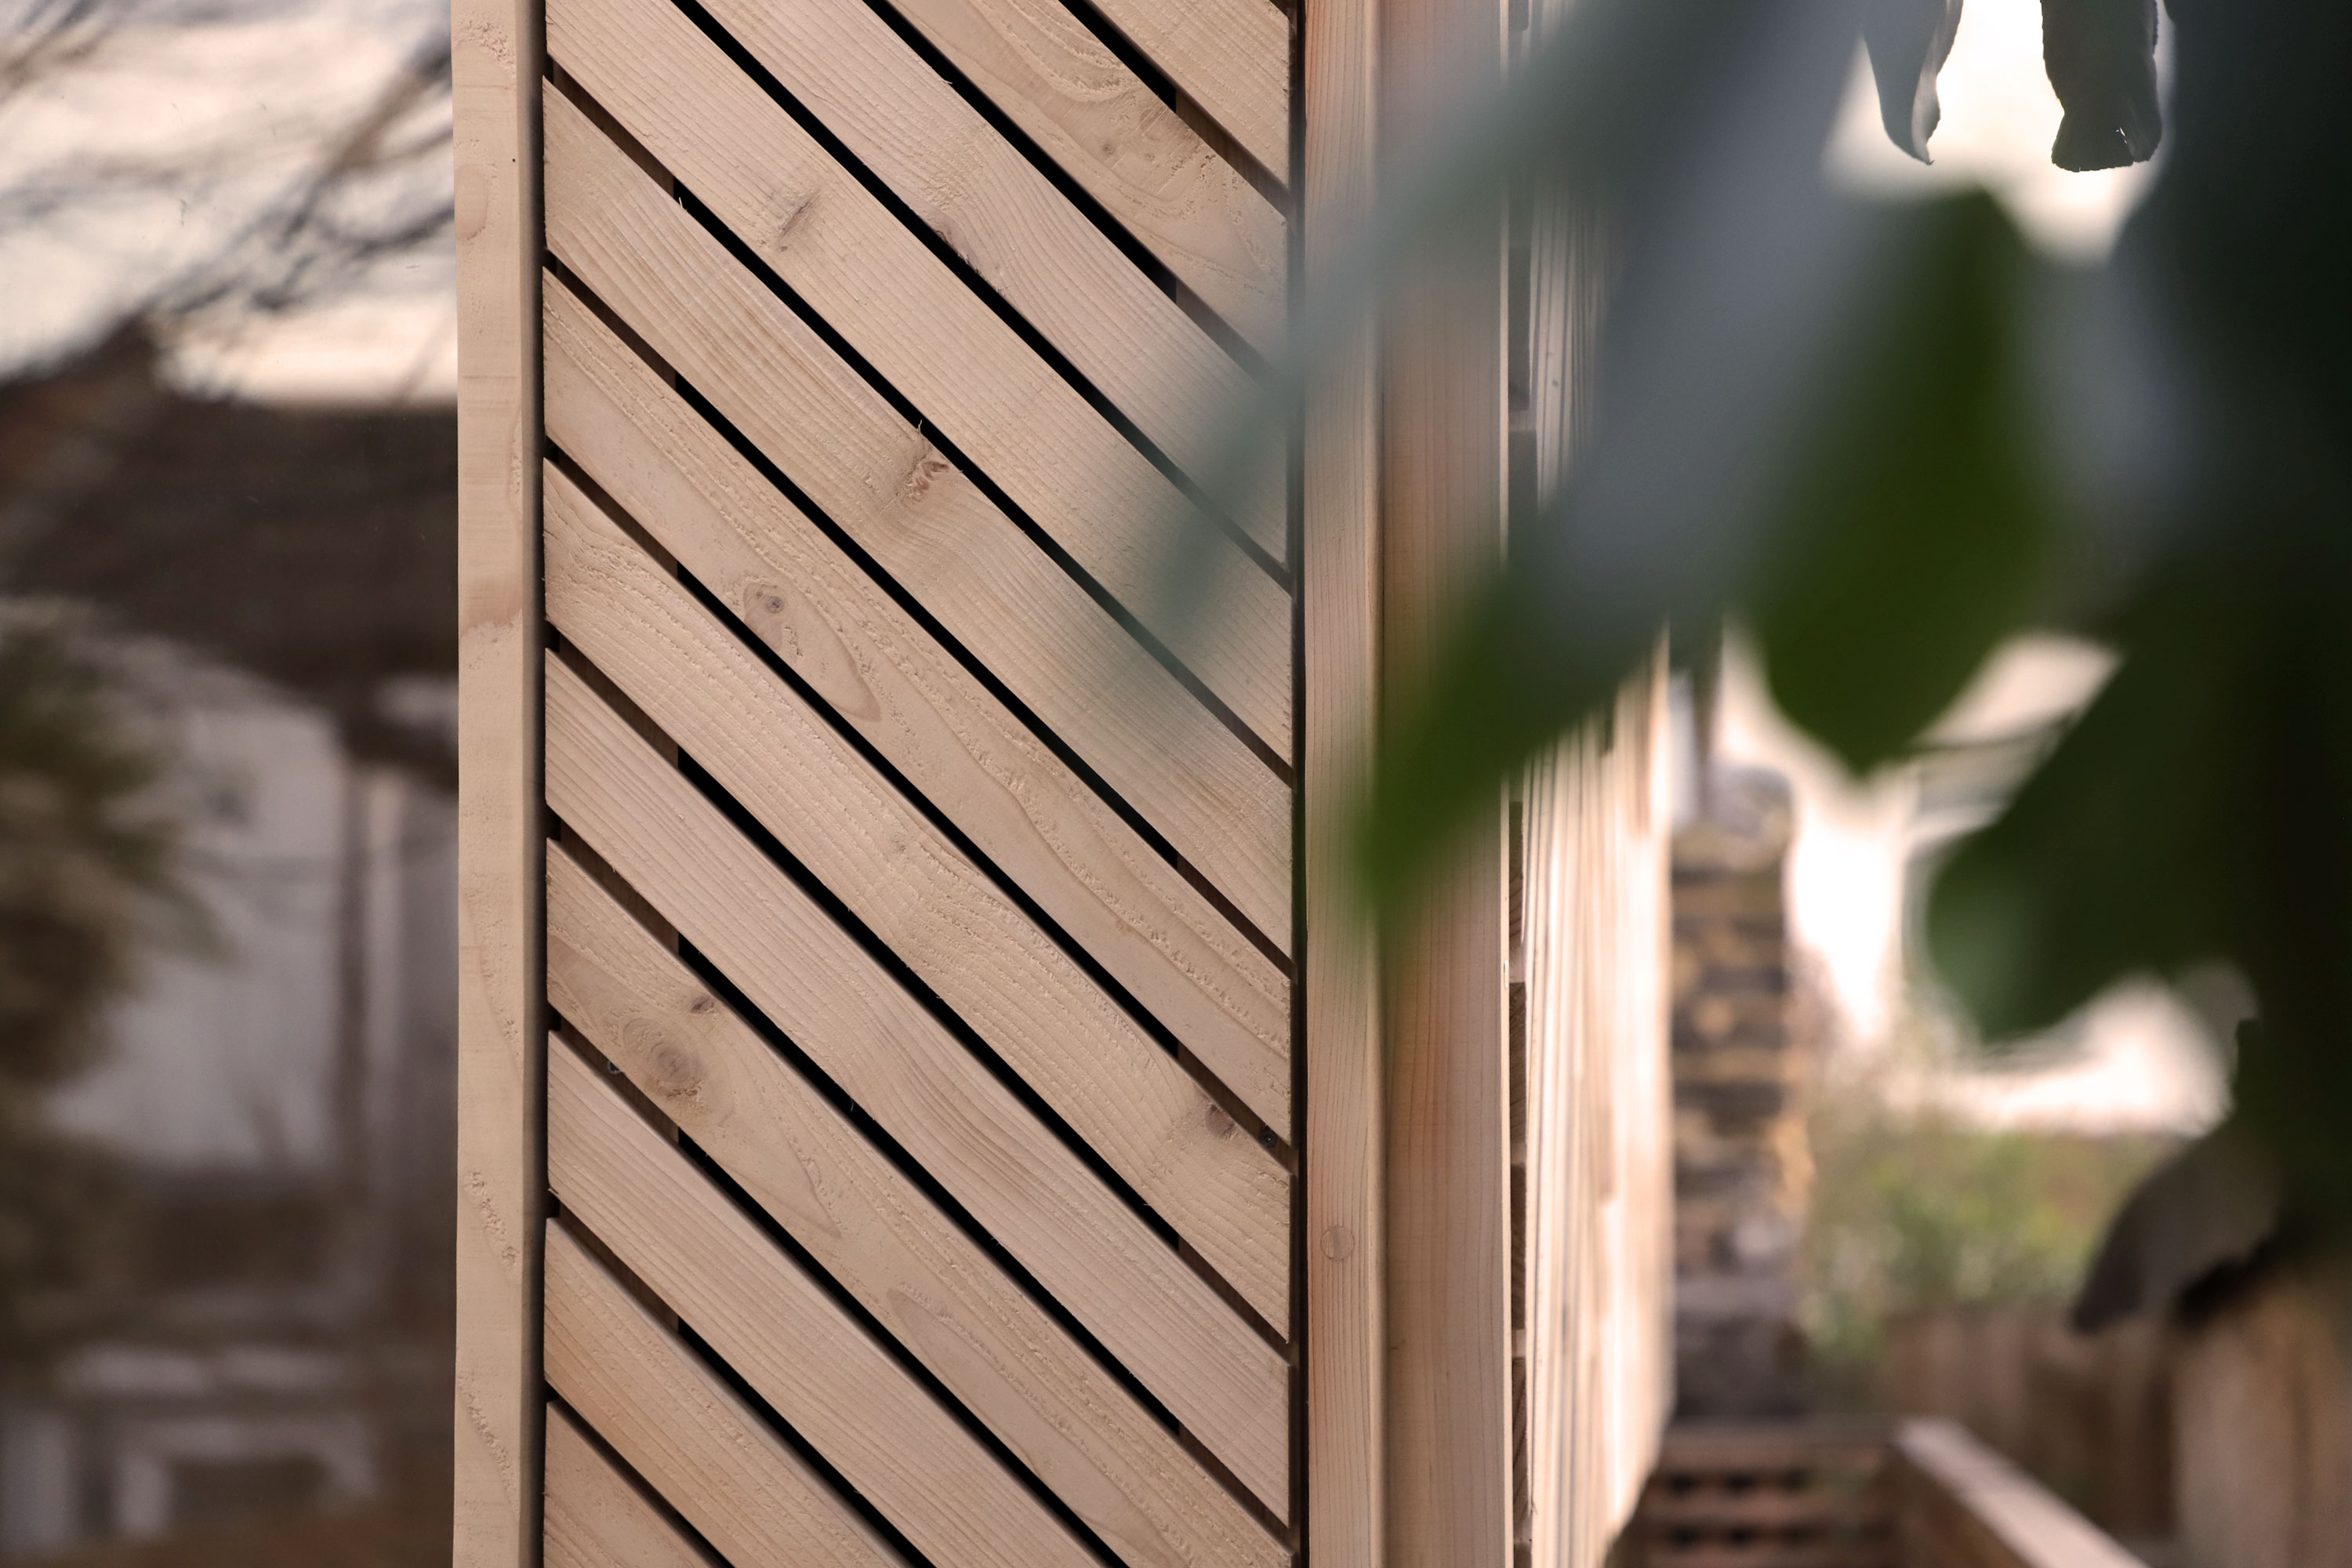 Exterior timber detail shot of the self build Manbey Pod located in London, built by using the U-Build system